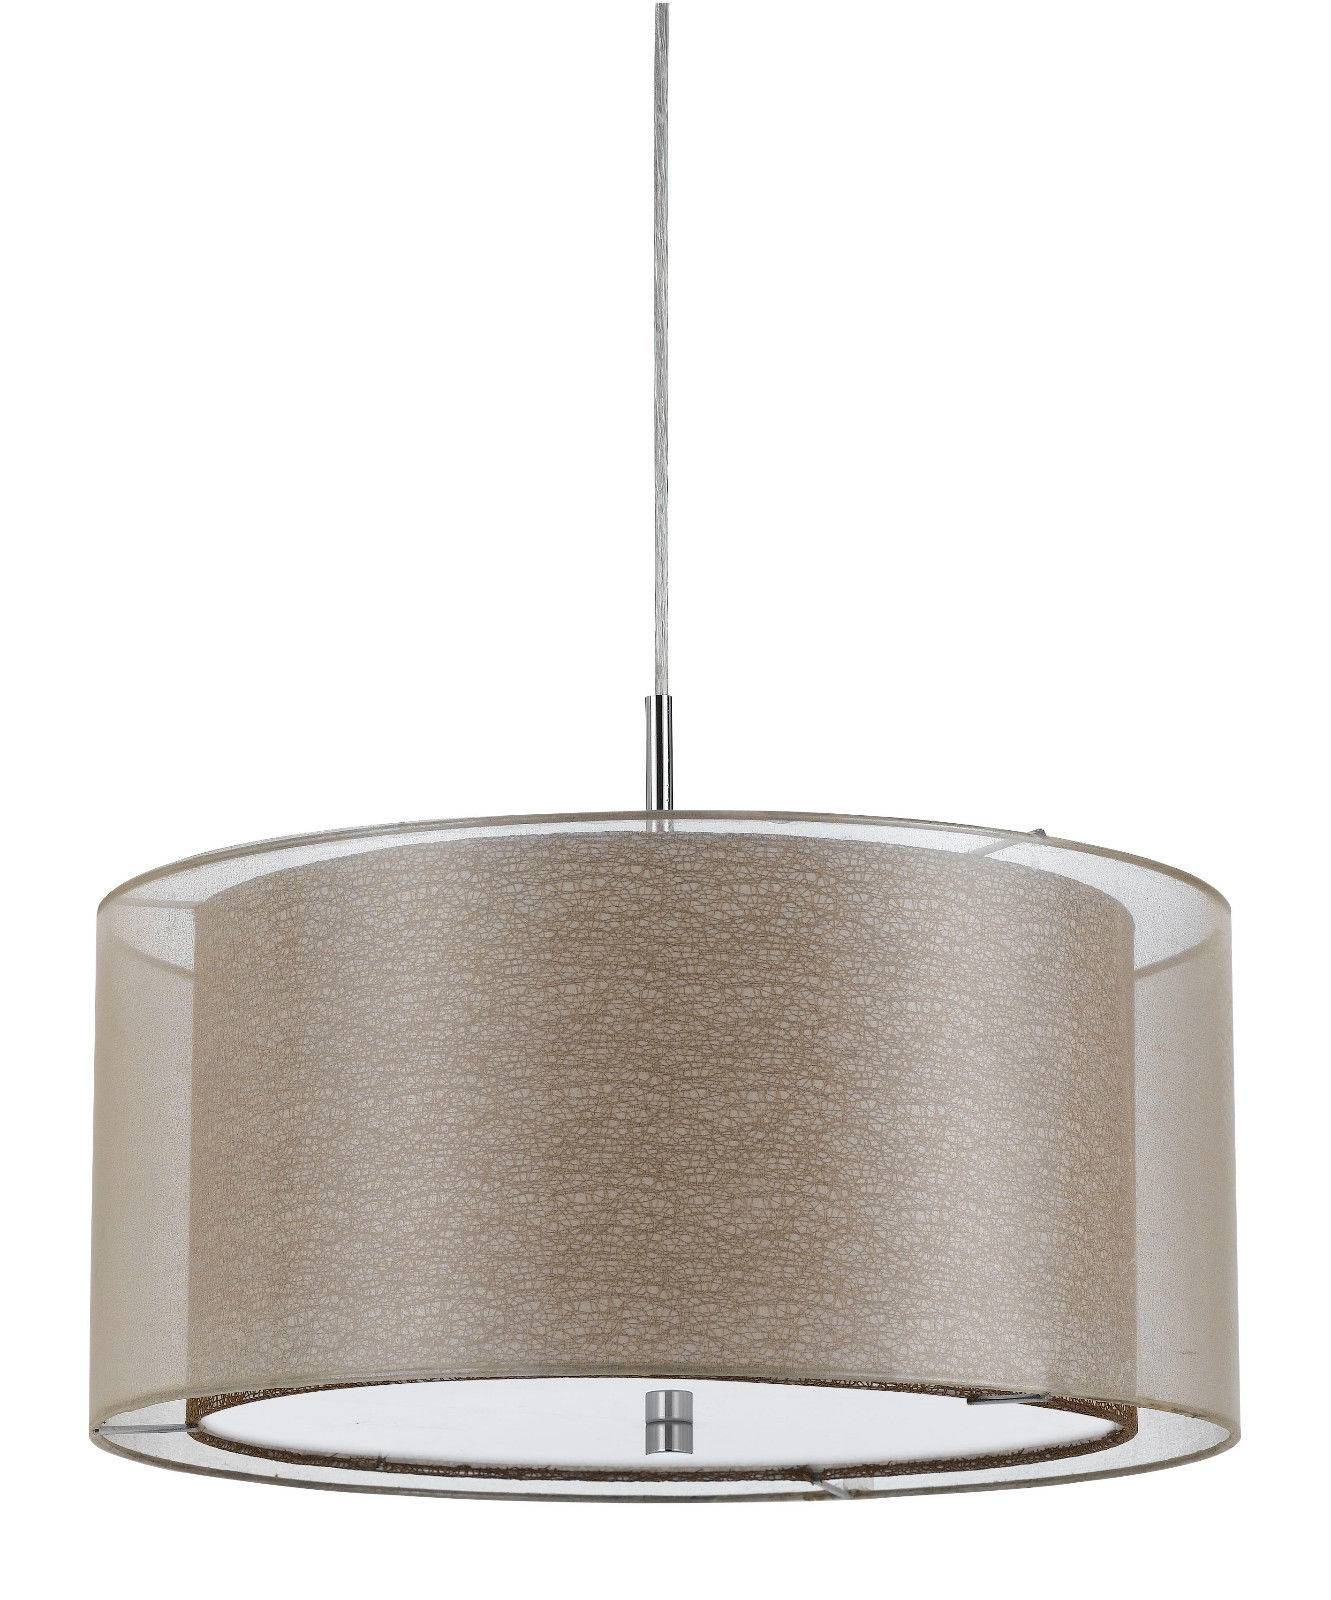 Sheer Burlap Drum Pendant Light Plug In | Lamp Shade Pro with regard to Drum Pendant Lights (Image 14 of 15)